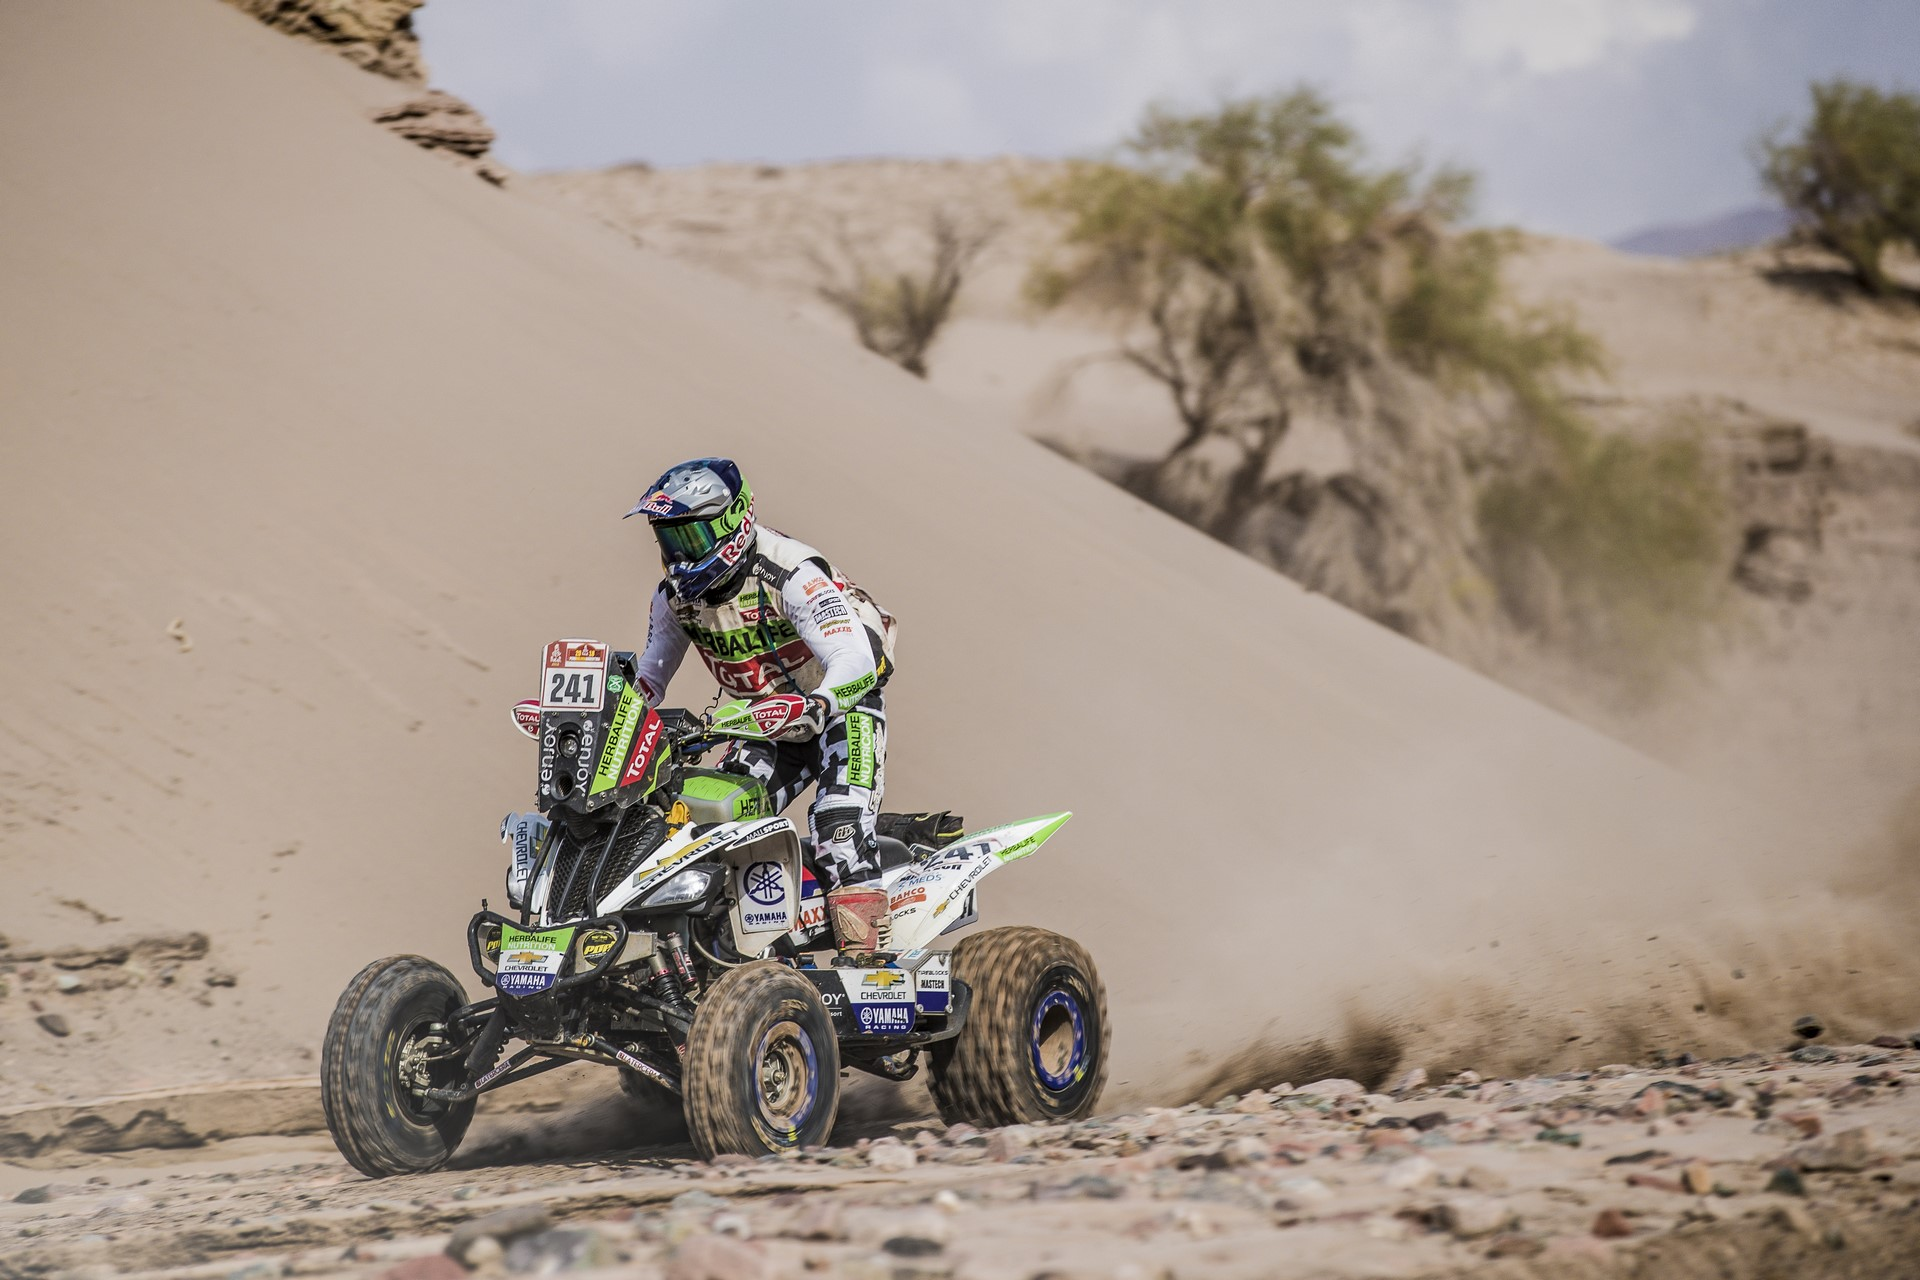 Ignacio Casale (CHL) of Casale Racing races during stage 11 of Rally Dakar 2018 from Belen to Chilecito, Argentina on January 17, 2018.